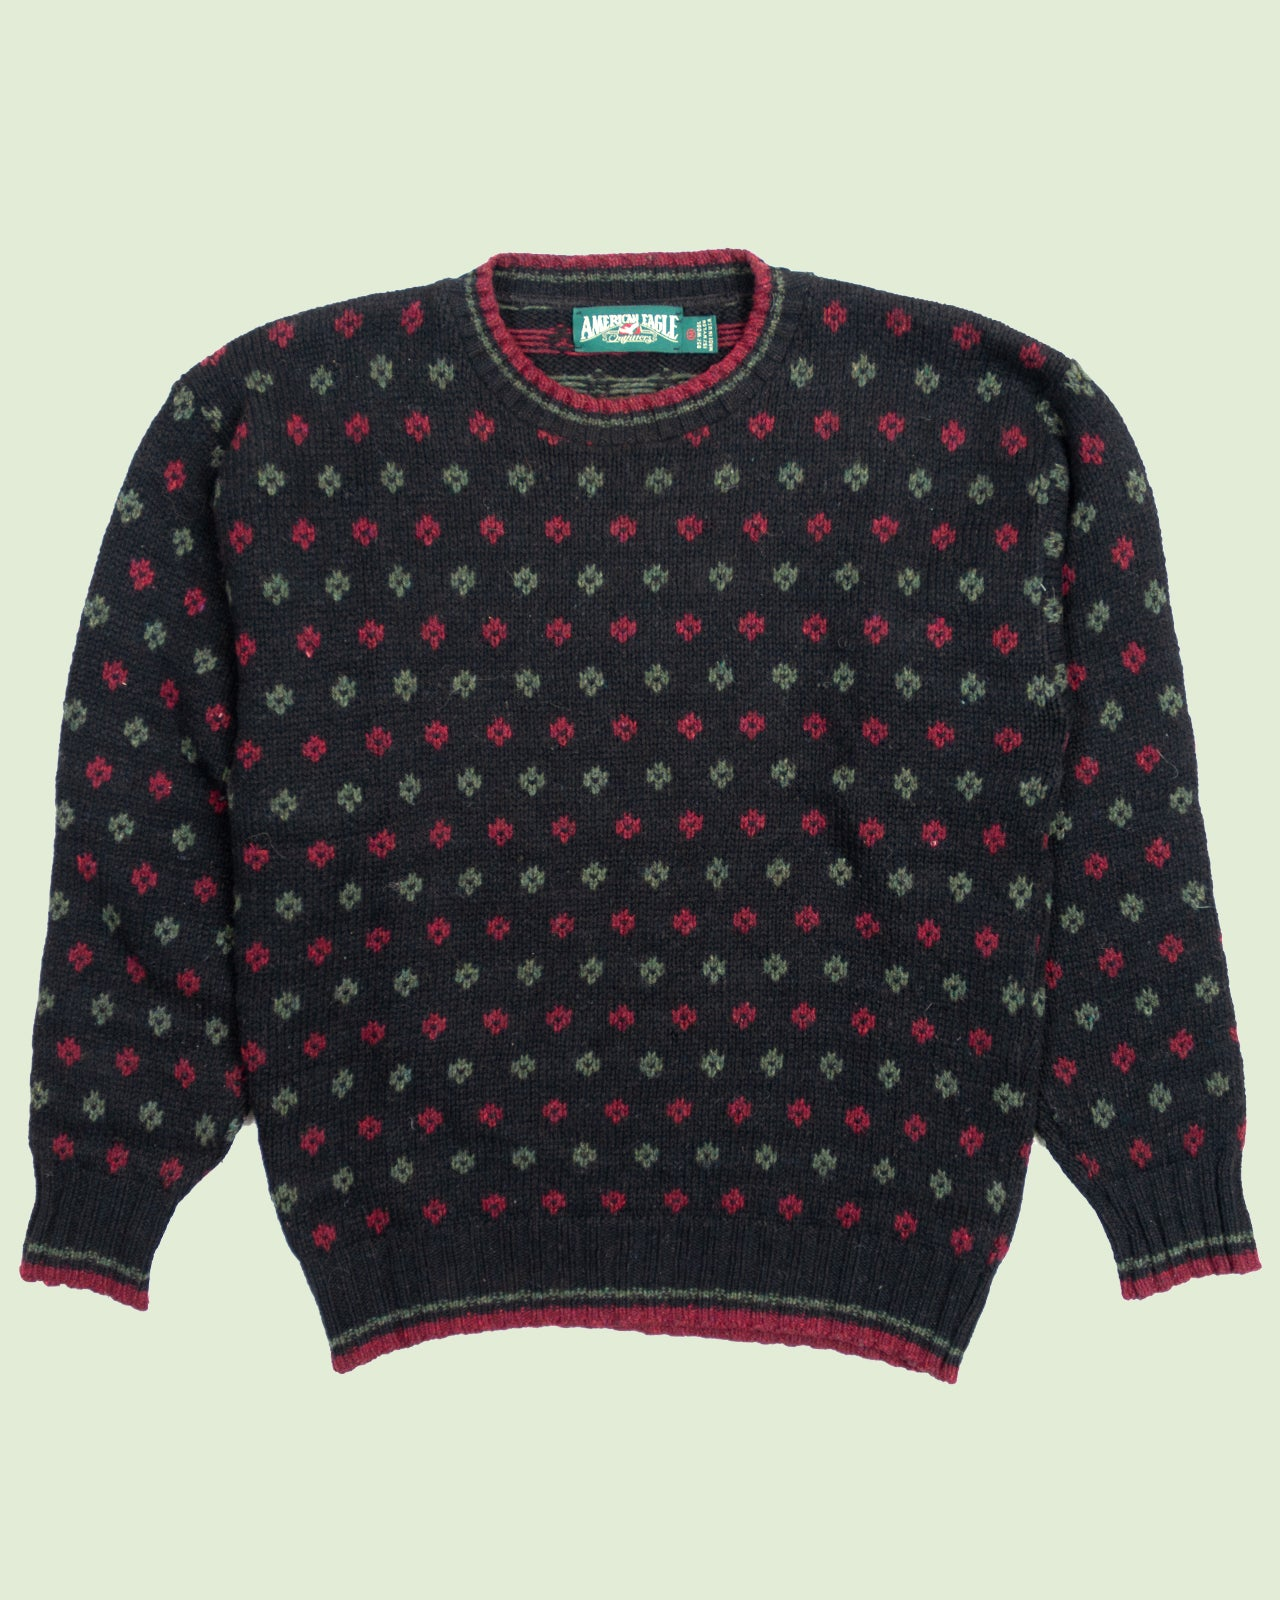 American Eagle Outfitters Sweater (M)